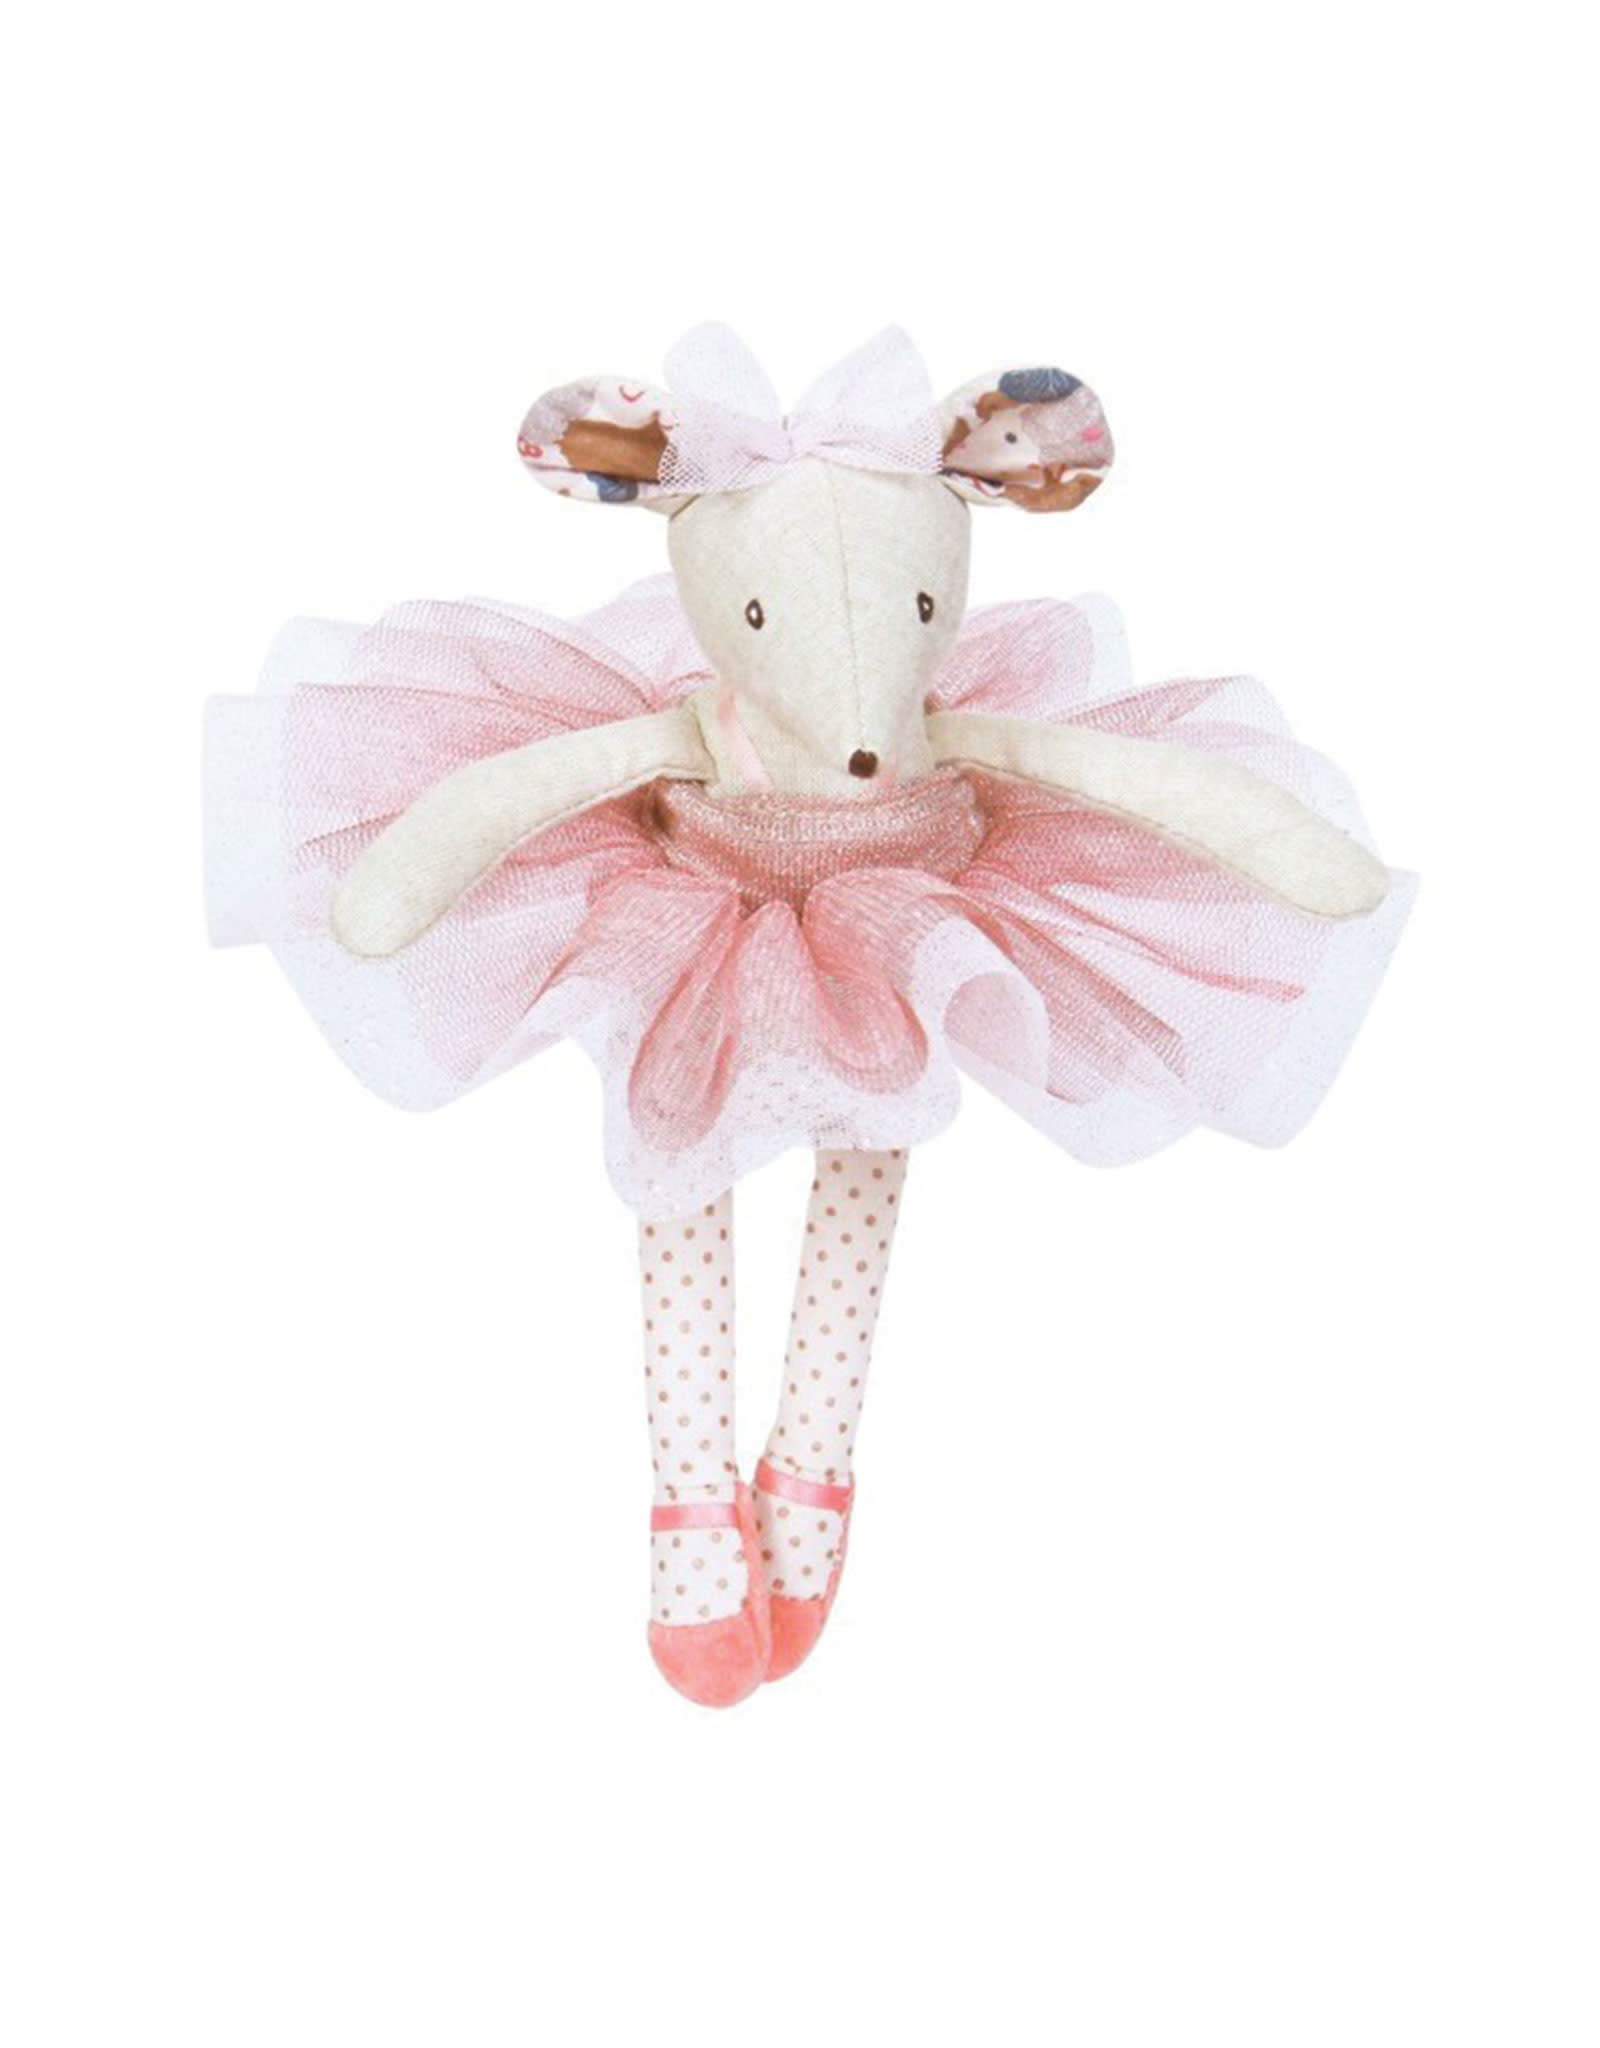 Moulin Roty Balerina Suitcase - Once Upon A Time